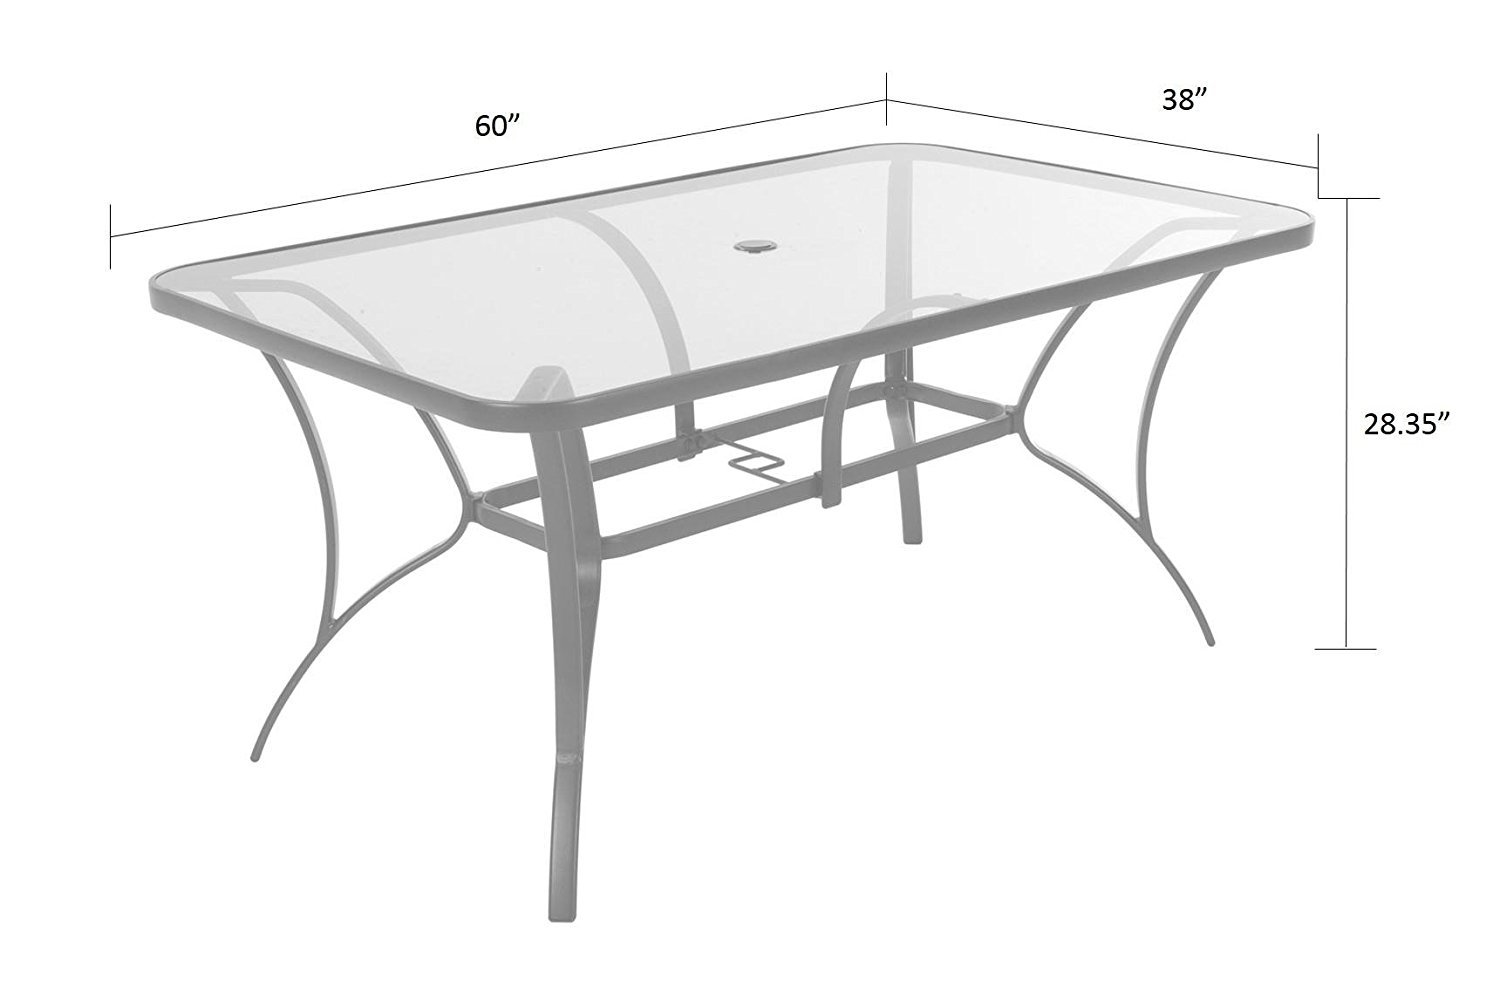 COSCO 88647GLGE Outdoor Living 7 Piece Paloma Steel Patio Dining Set, Light/Dark Gray by Cosco Outdoor Living (Image #13)